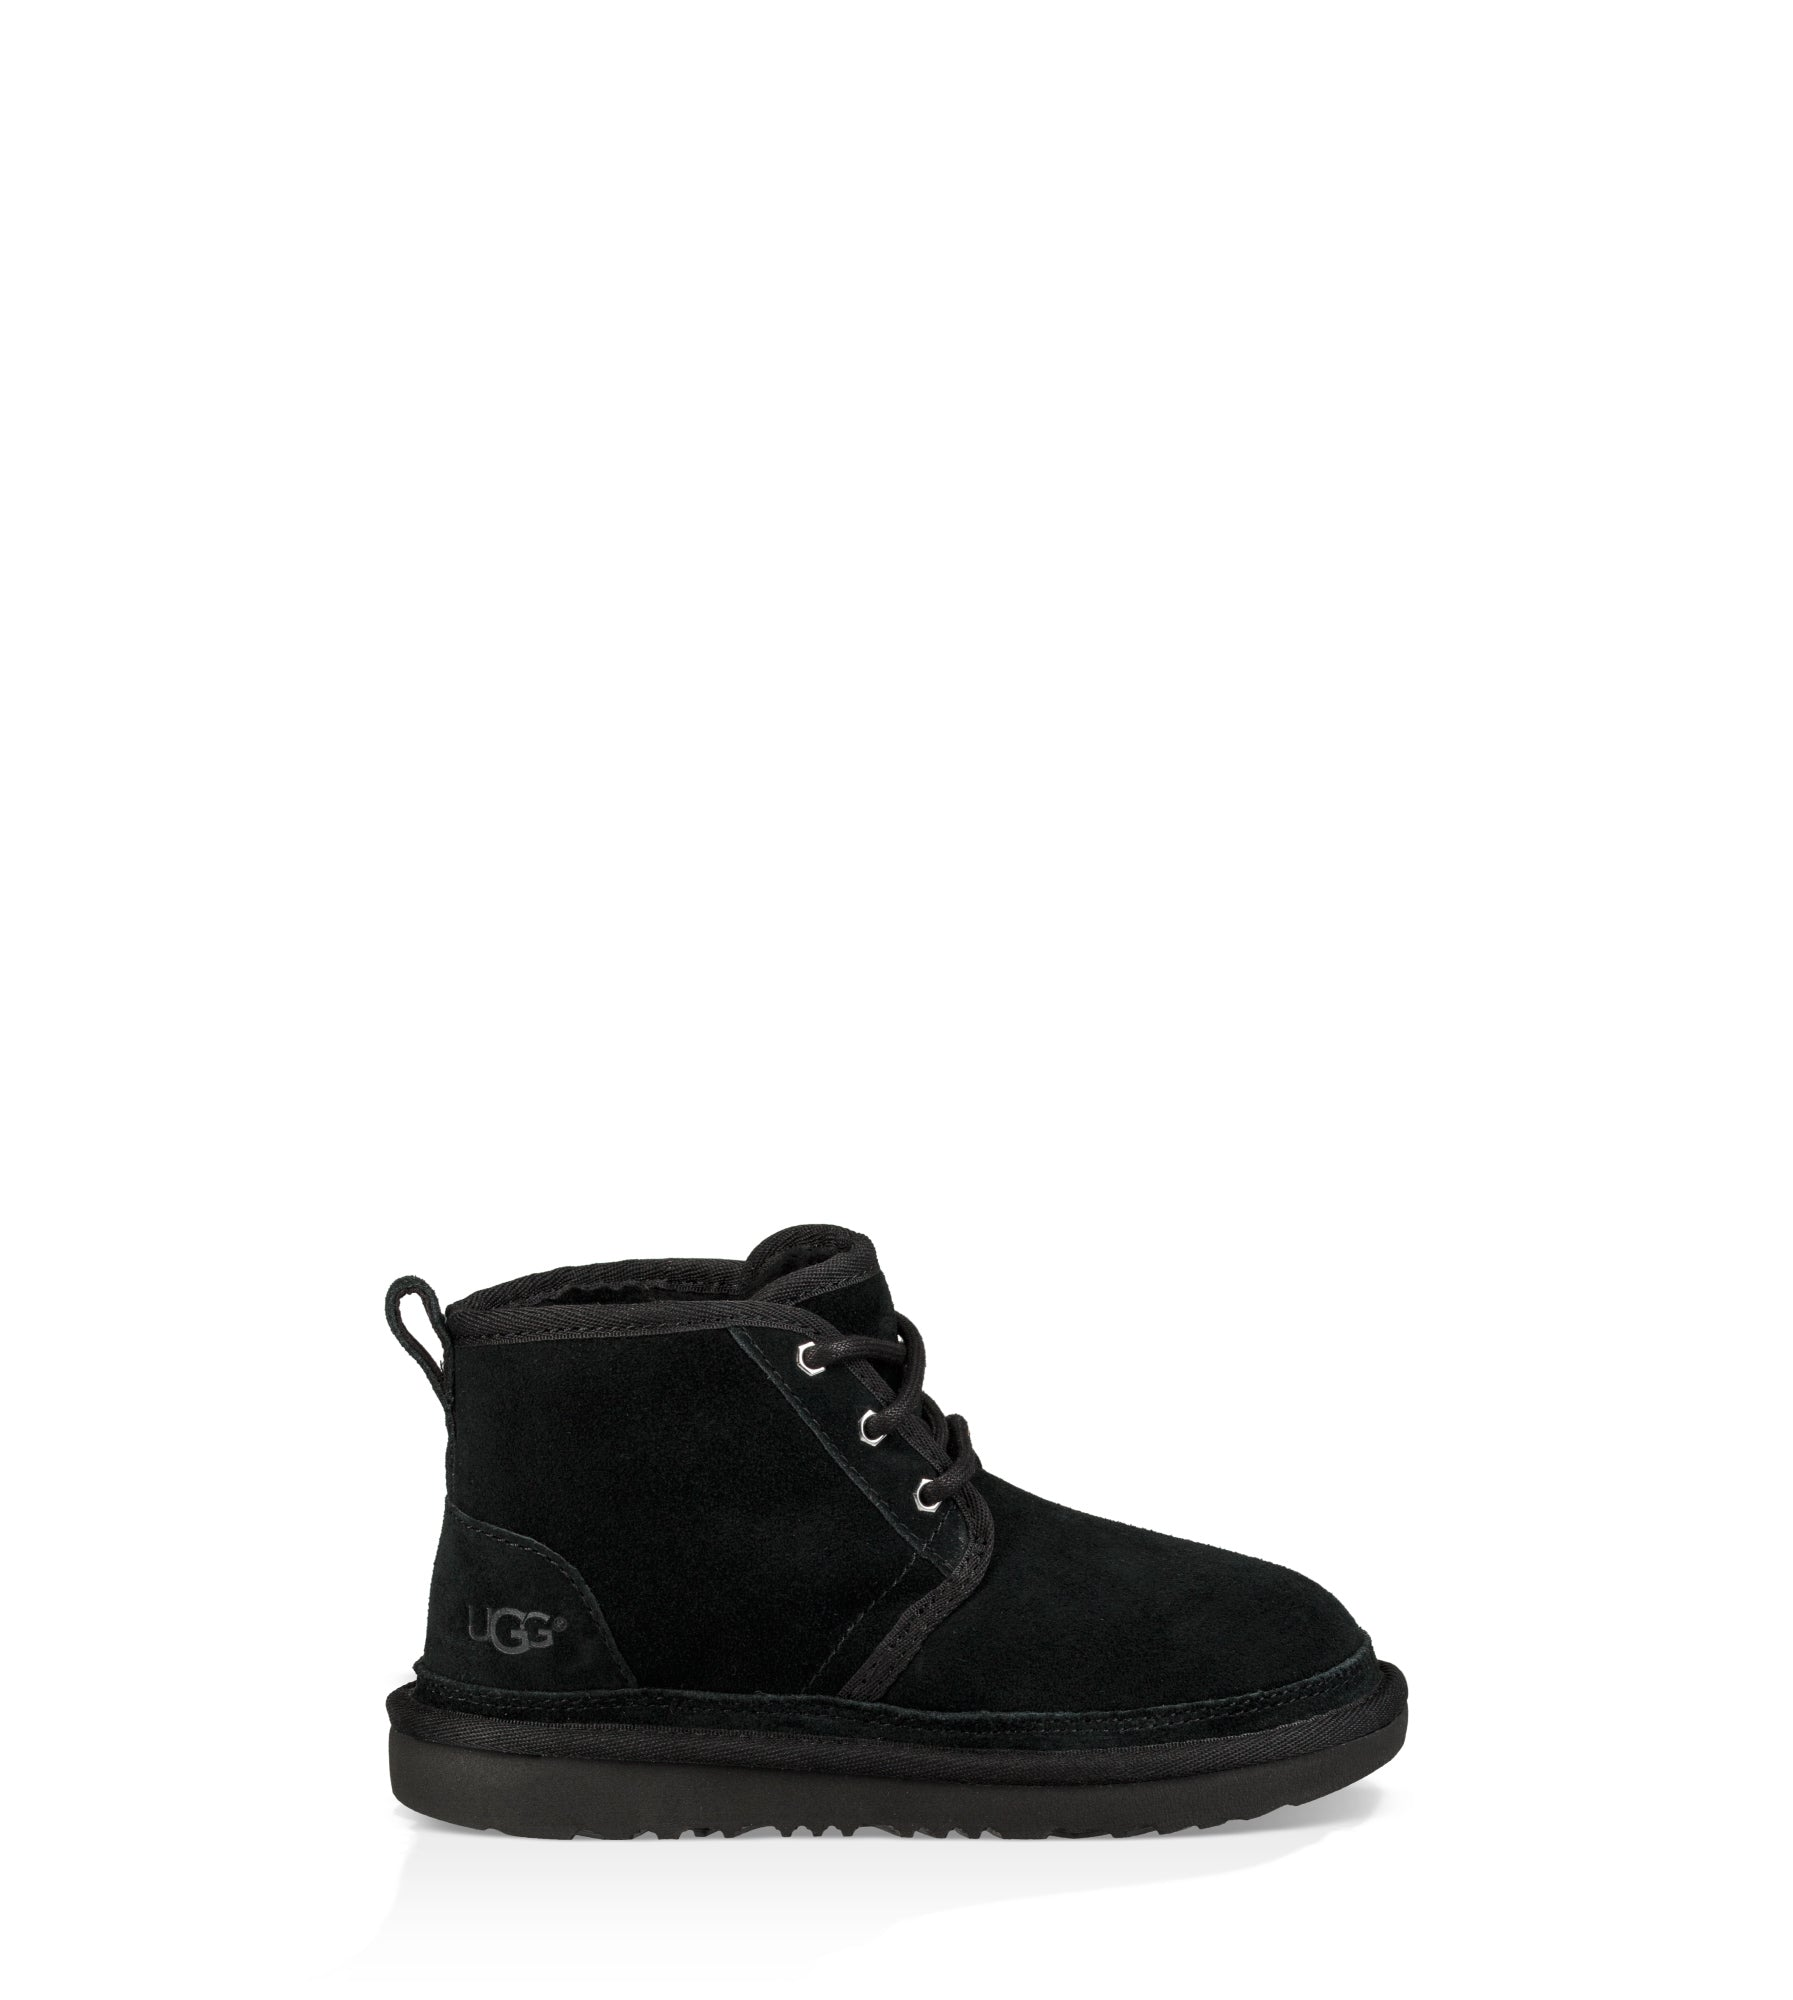 UGG Australia Men's Neumel in Black